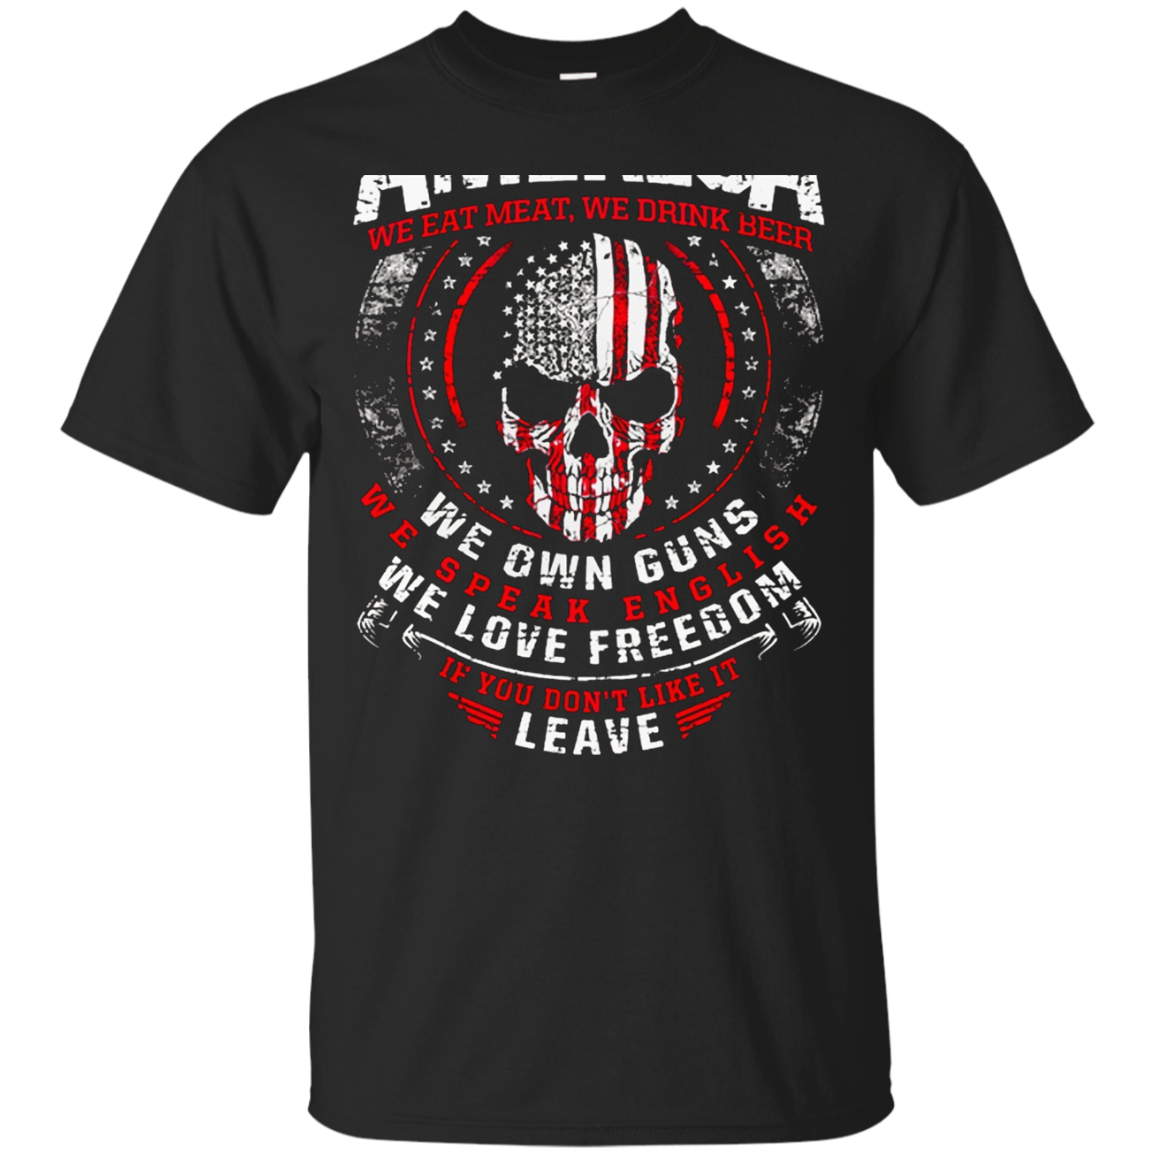 30.15.4 Shirt – We Eat Meat, We Drink Beer, We Own Guns … – T-Shirt